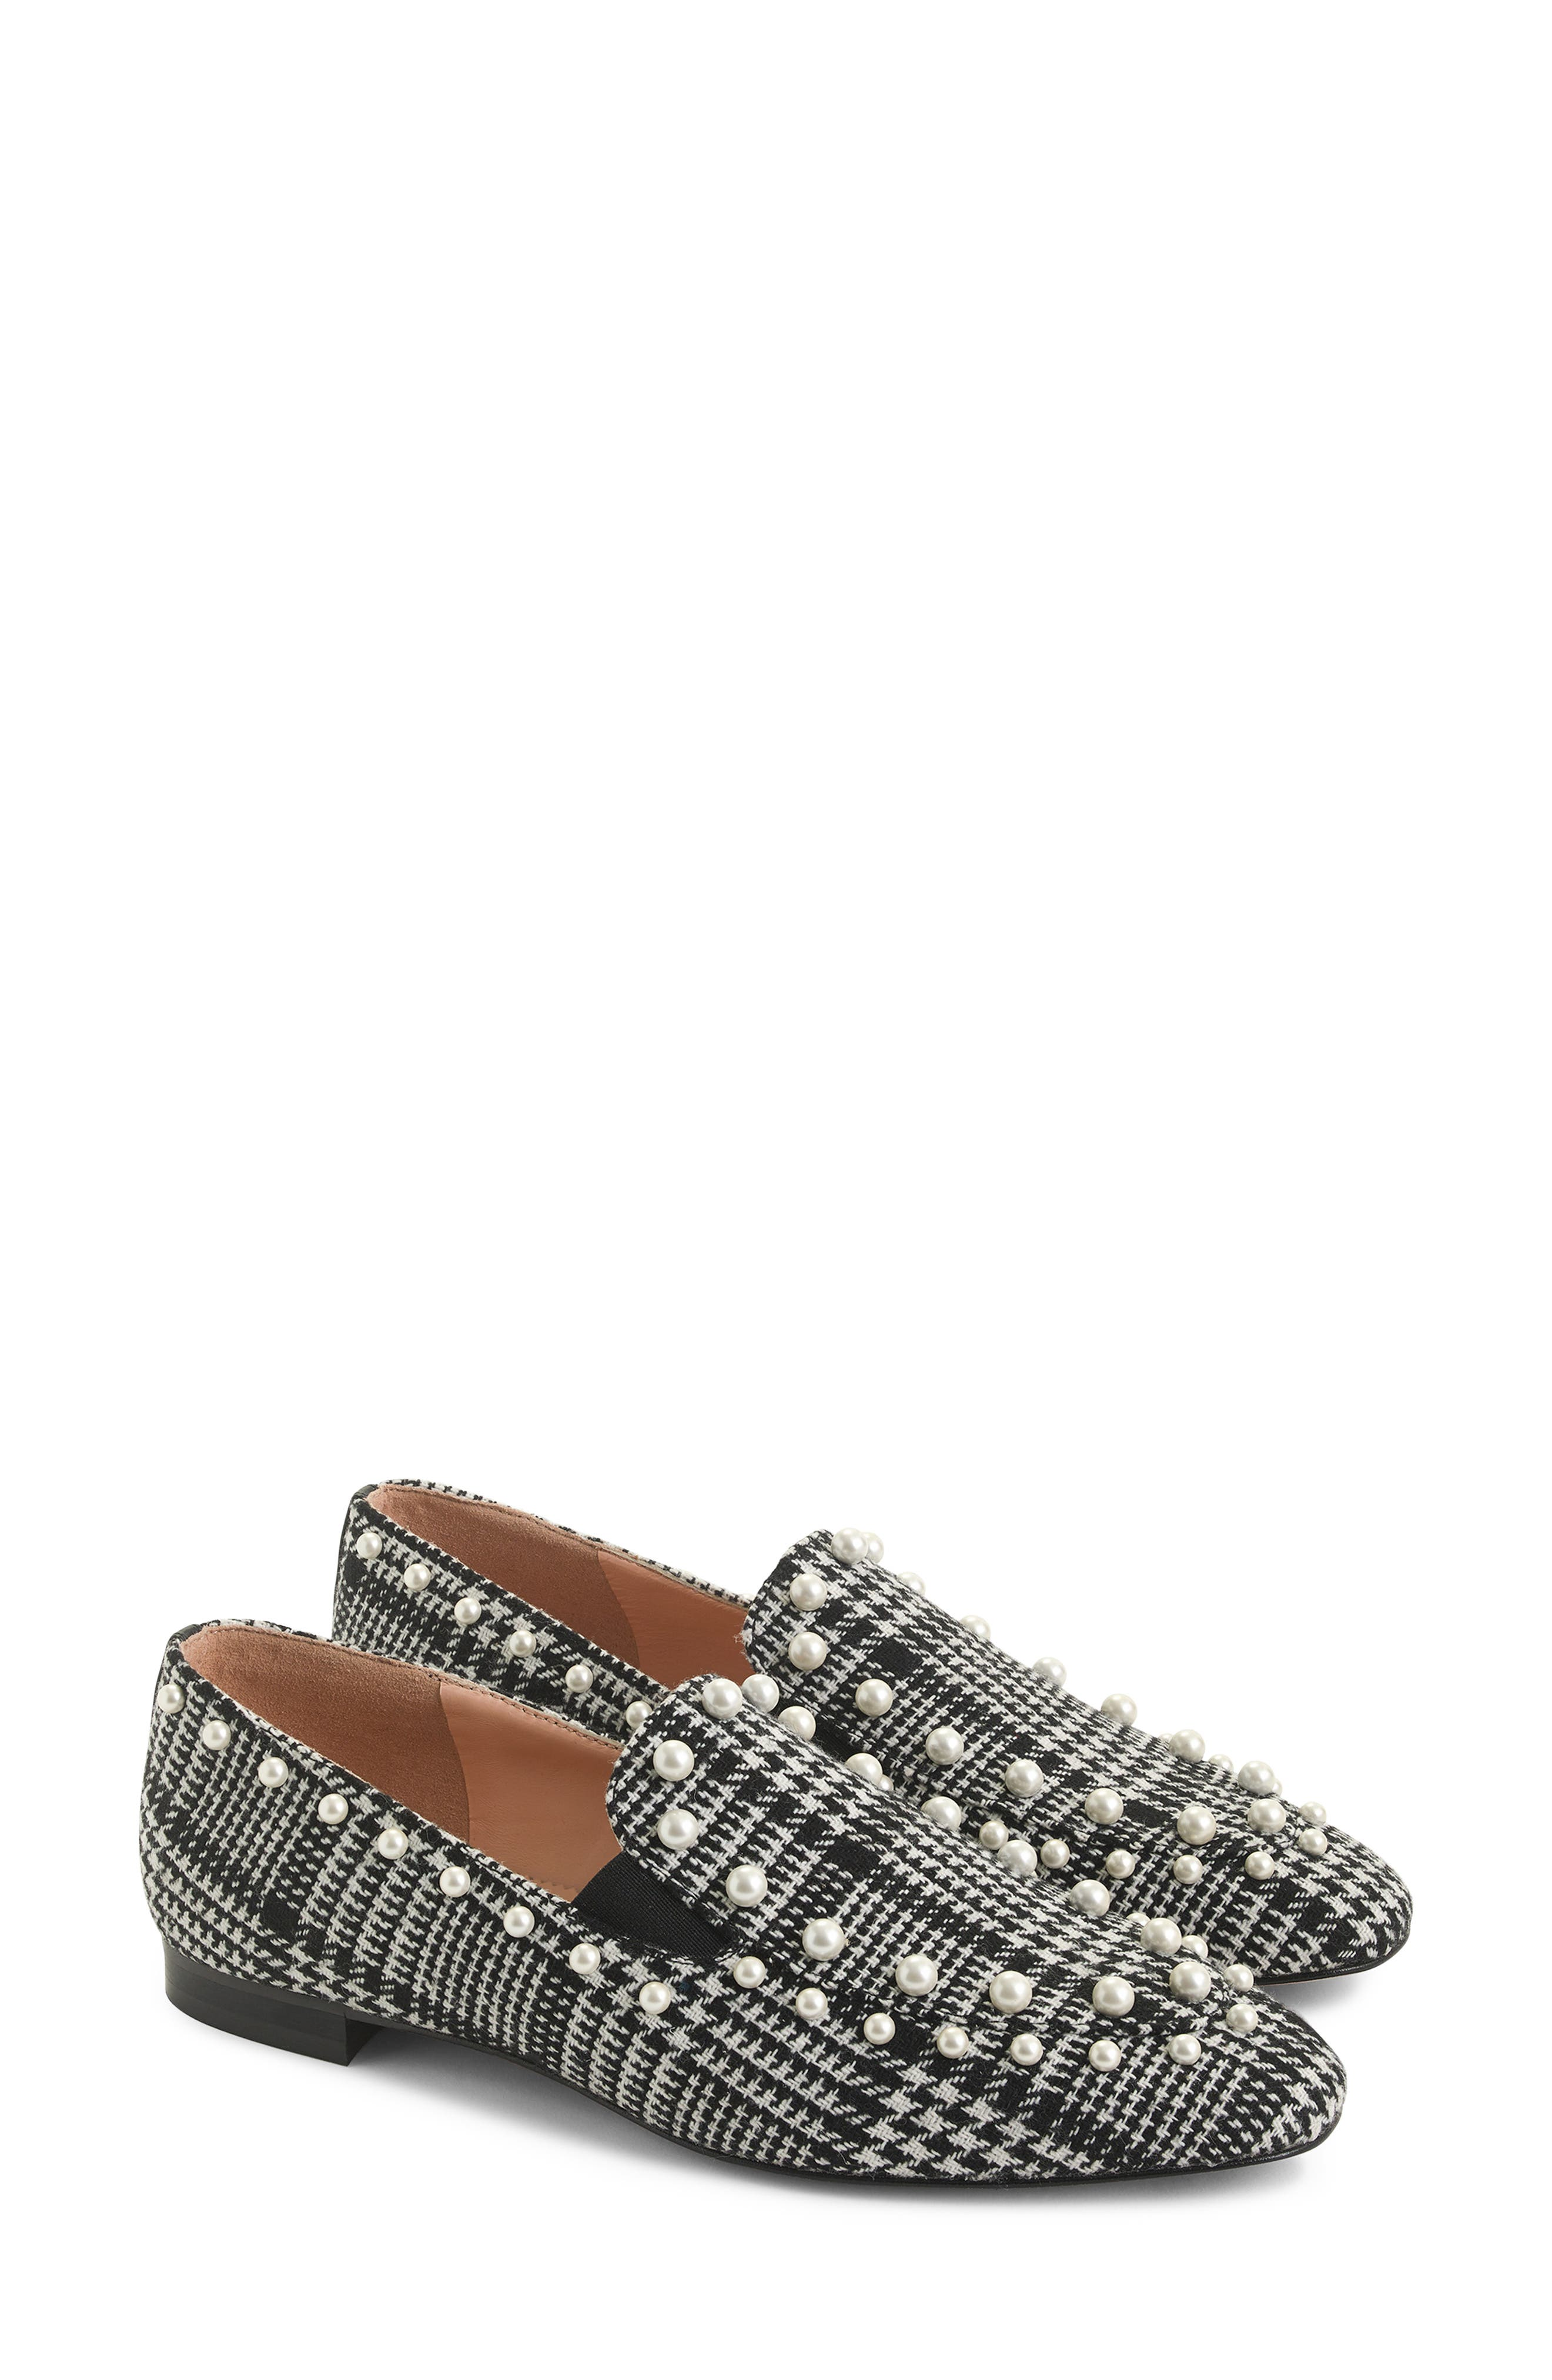 J. Crew Pearl Studded Loafers in Glen Plaid, Main, color, BLACK/ IVORY GLEN PLAID FABRIC